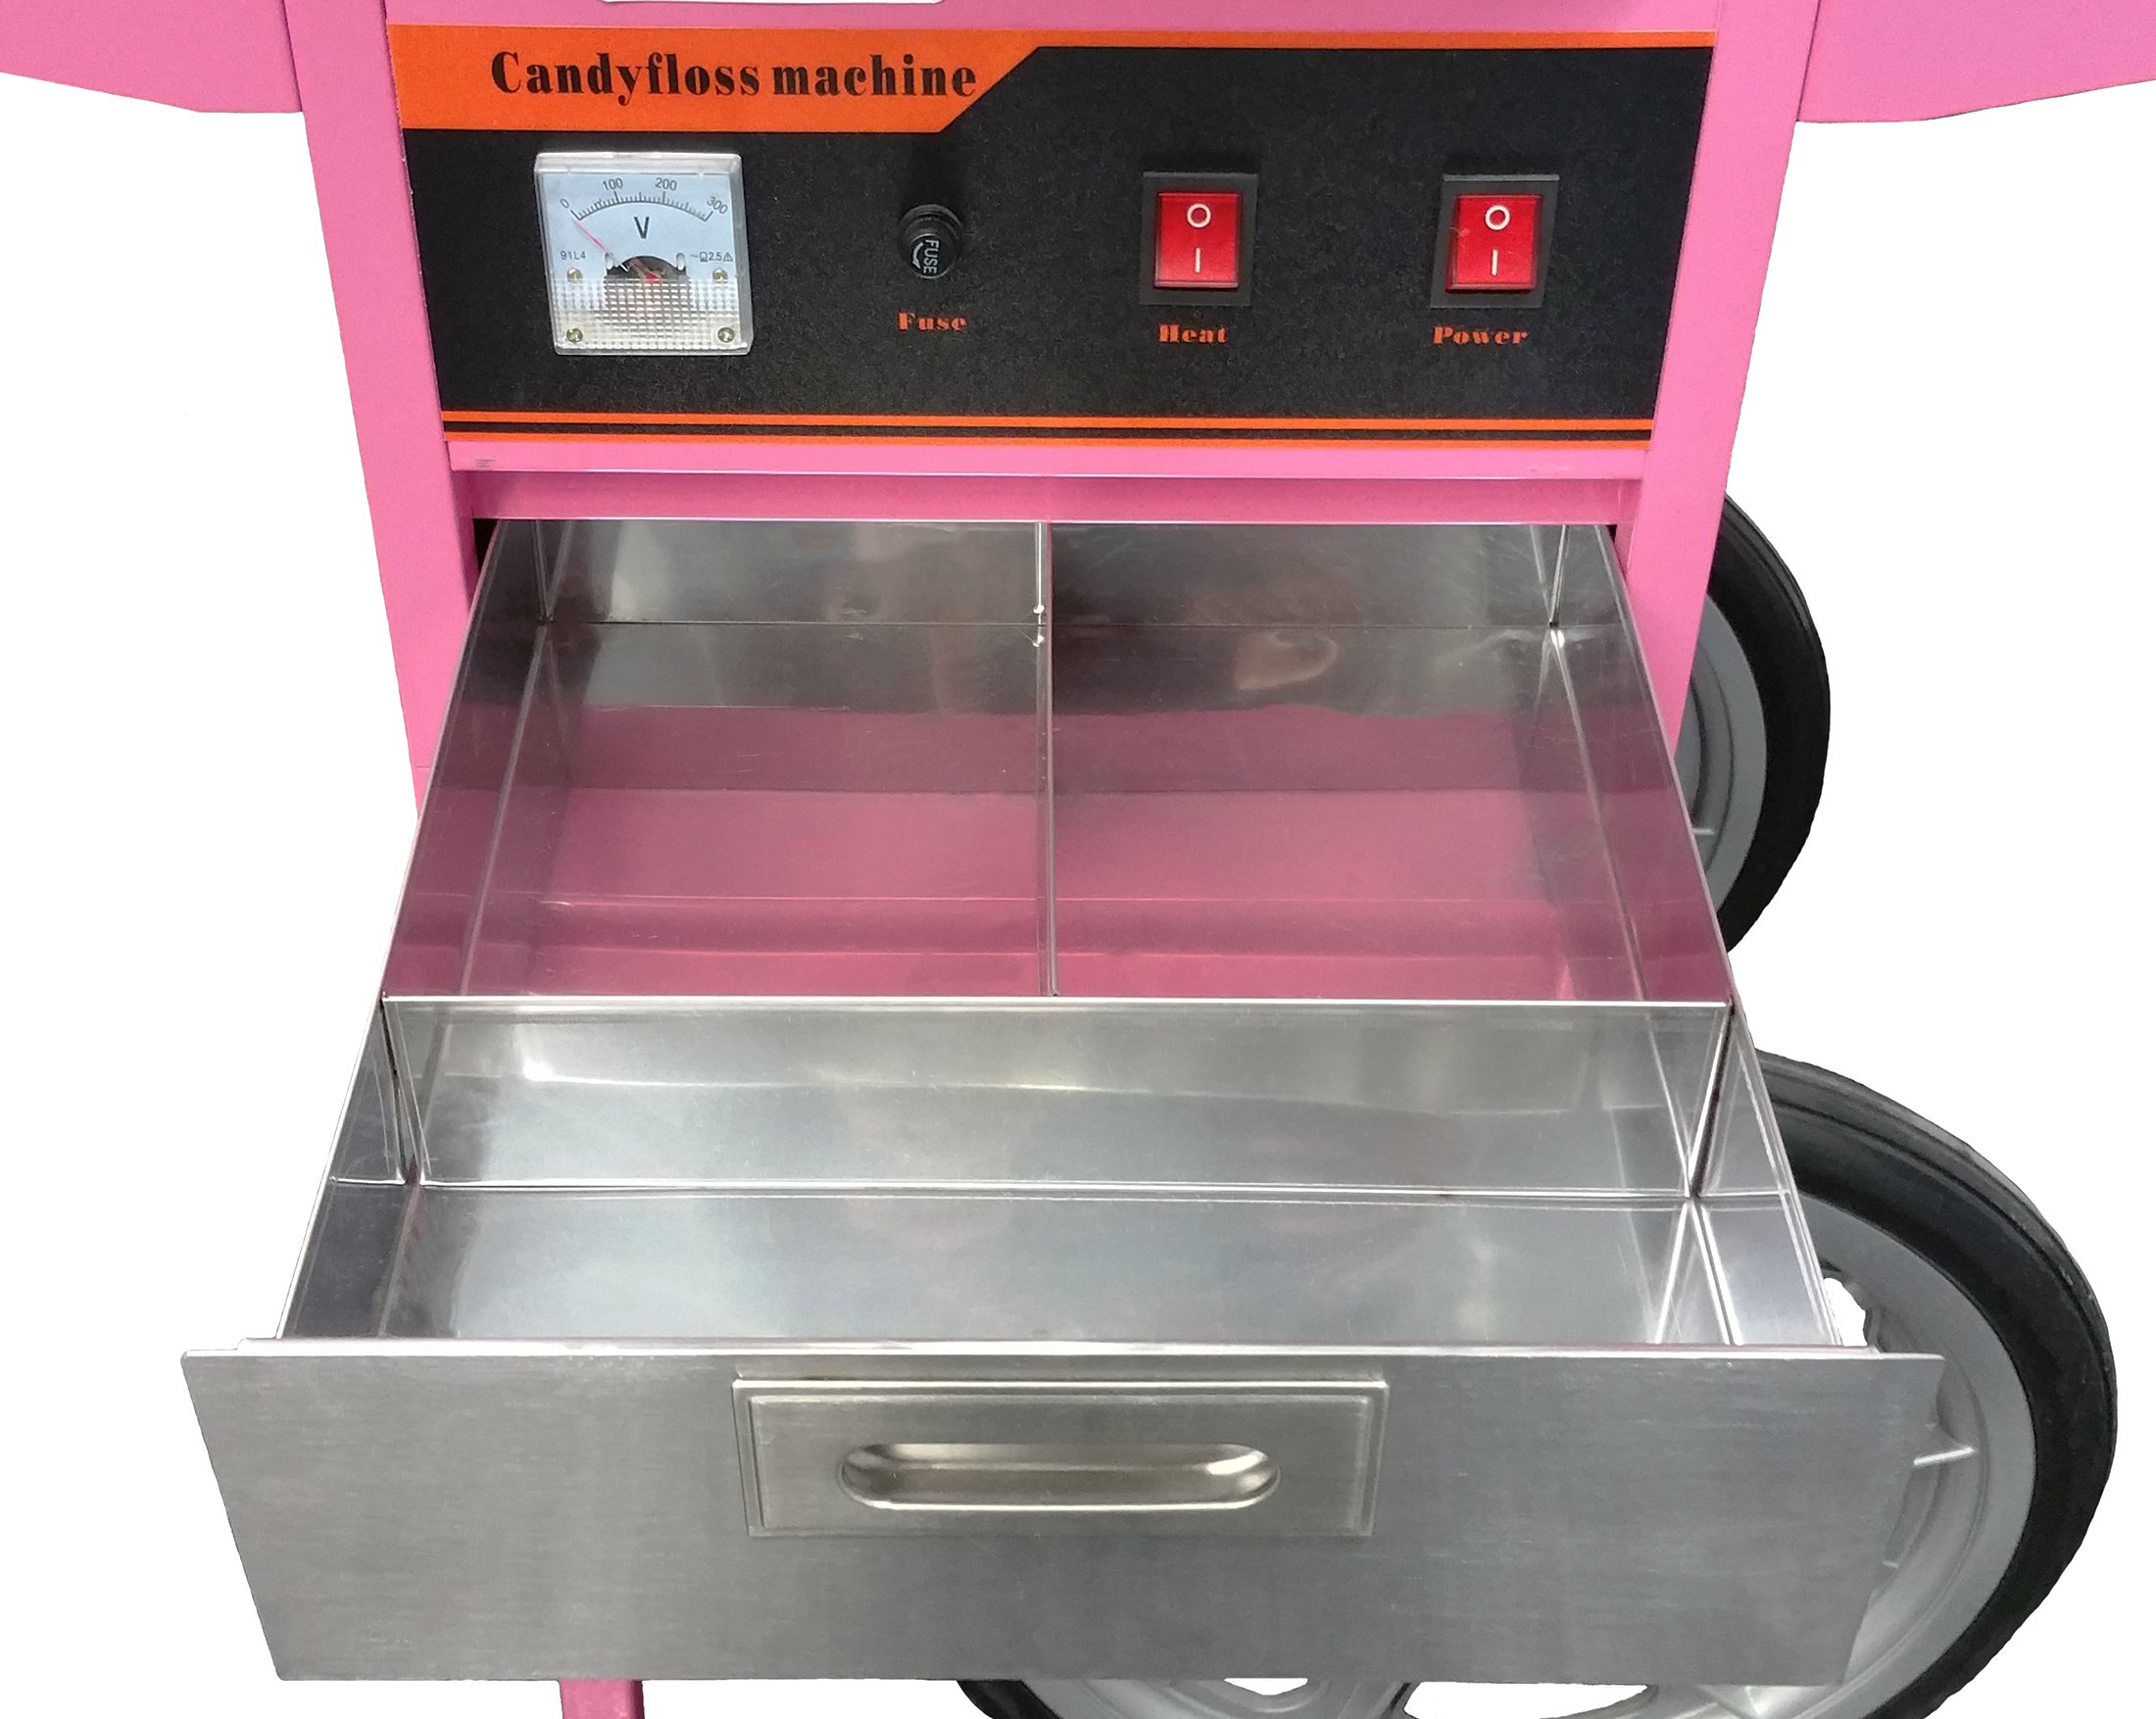 Electric Commercial Cotton Candy Machine / Candy Floss Maker Pink Cart Stand VIVO (CANDY-V002) by VIVO (Image #7)